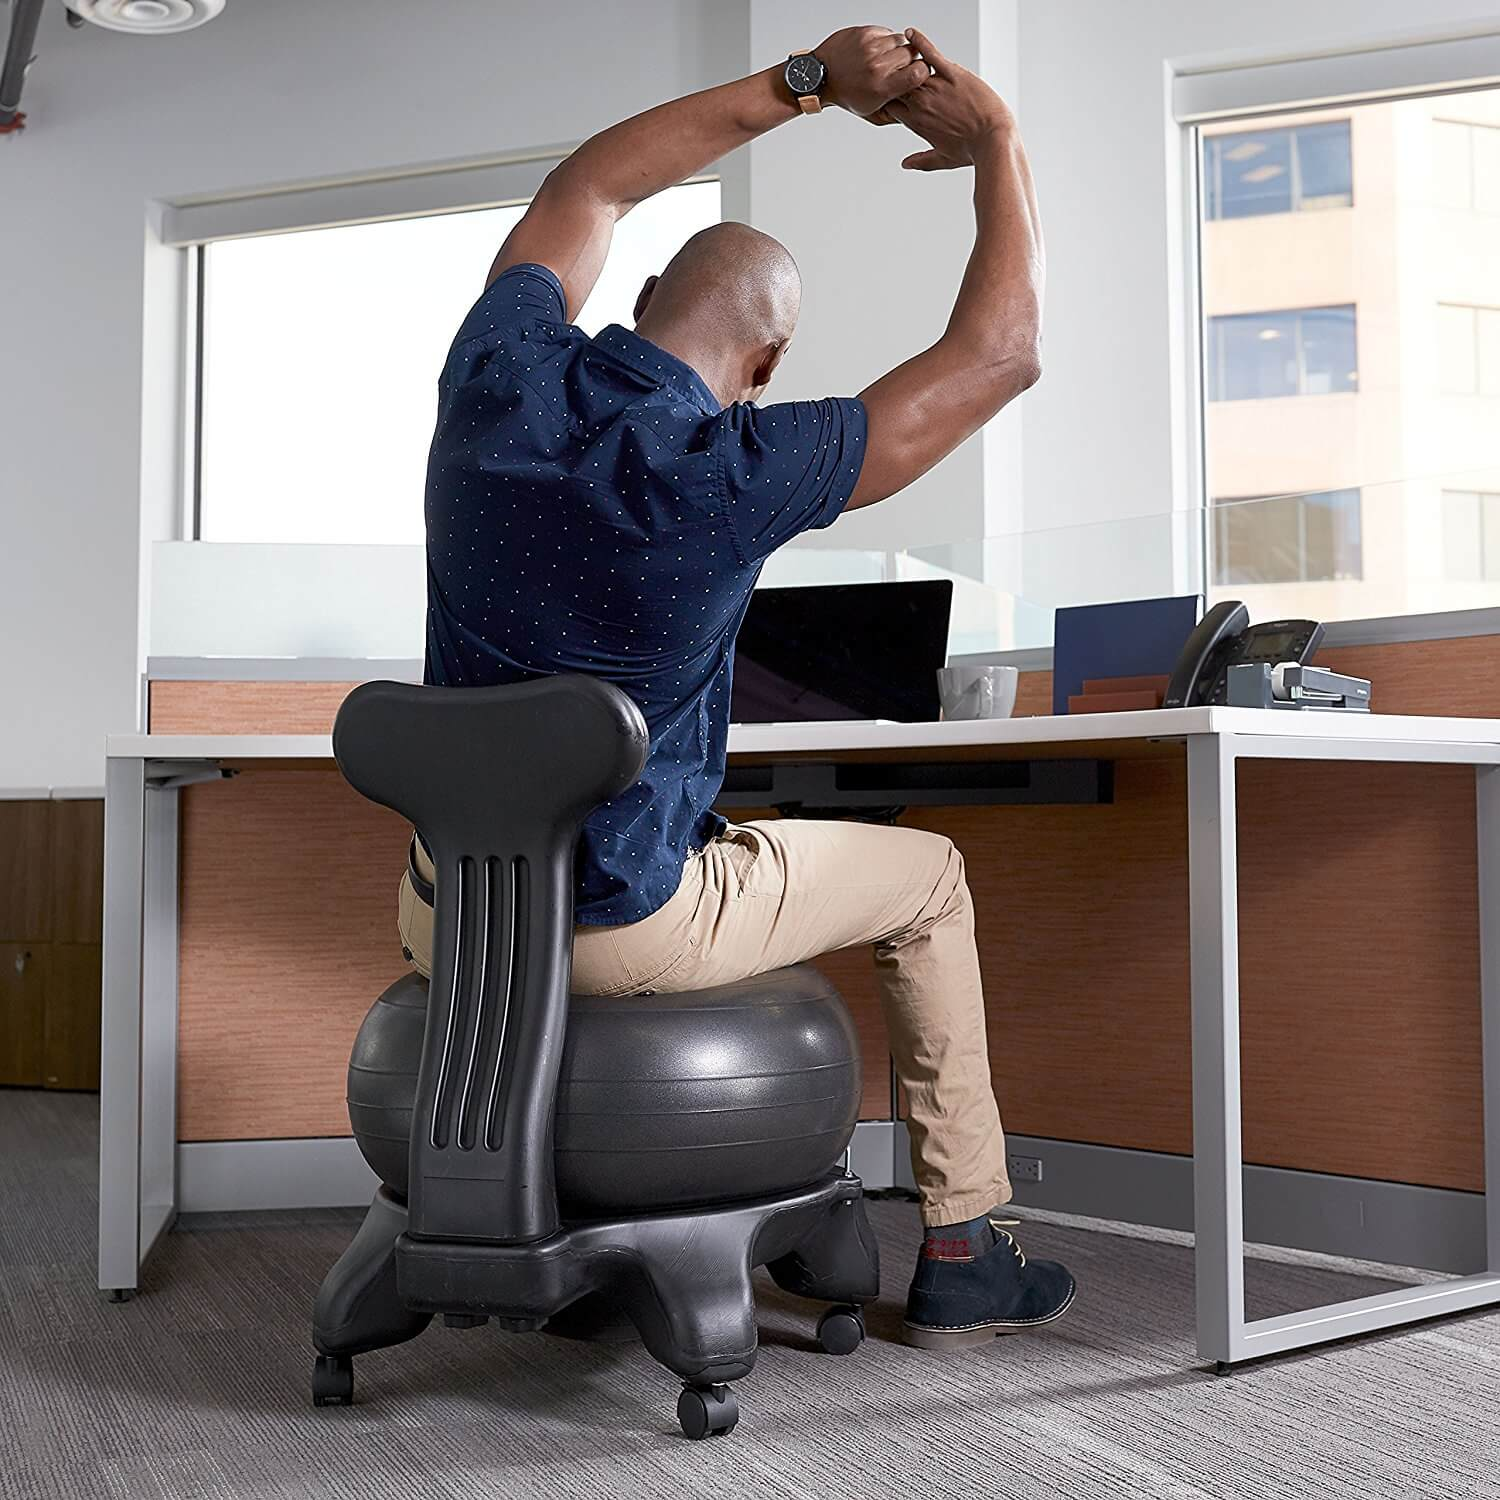 Are ball chairs good for your back?